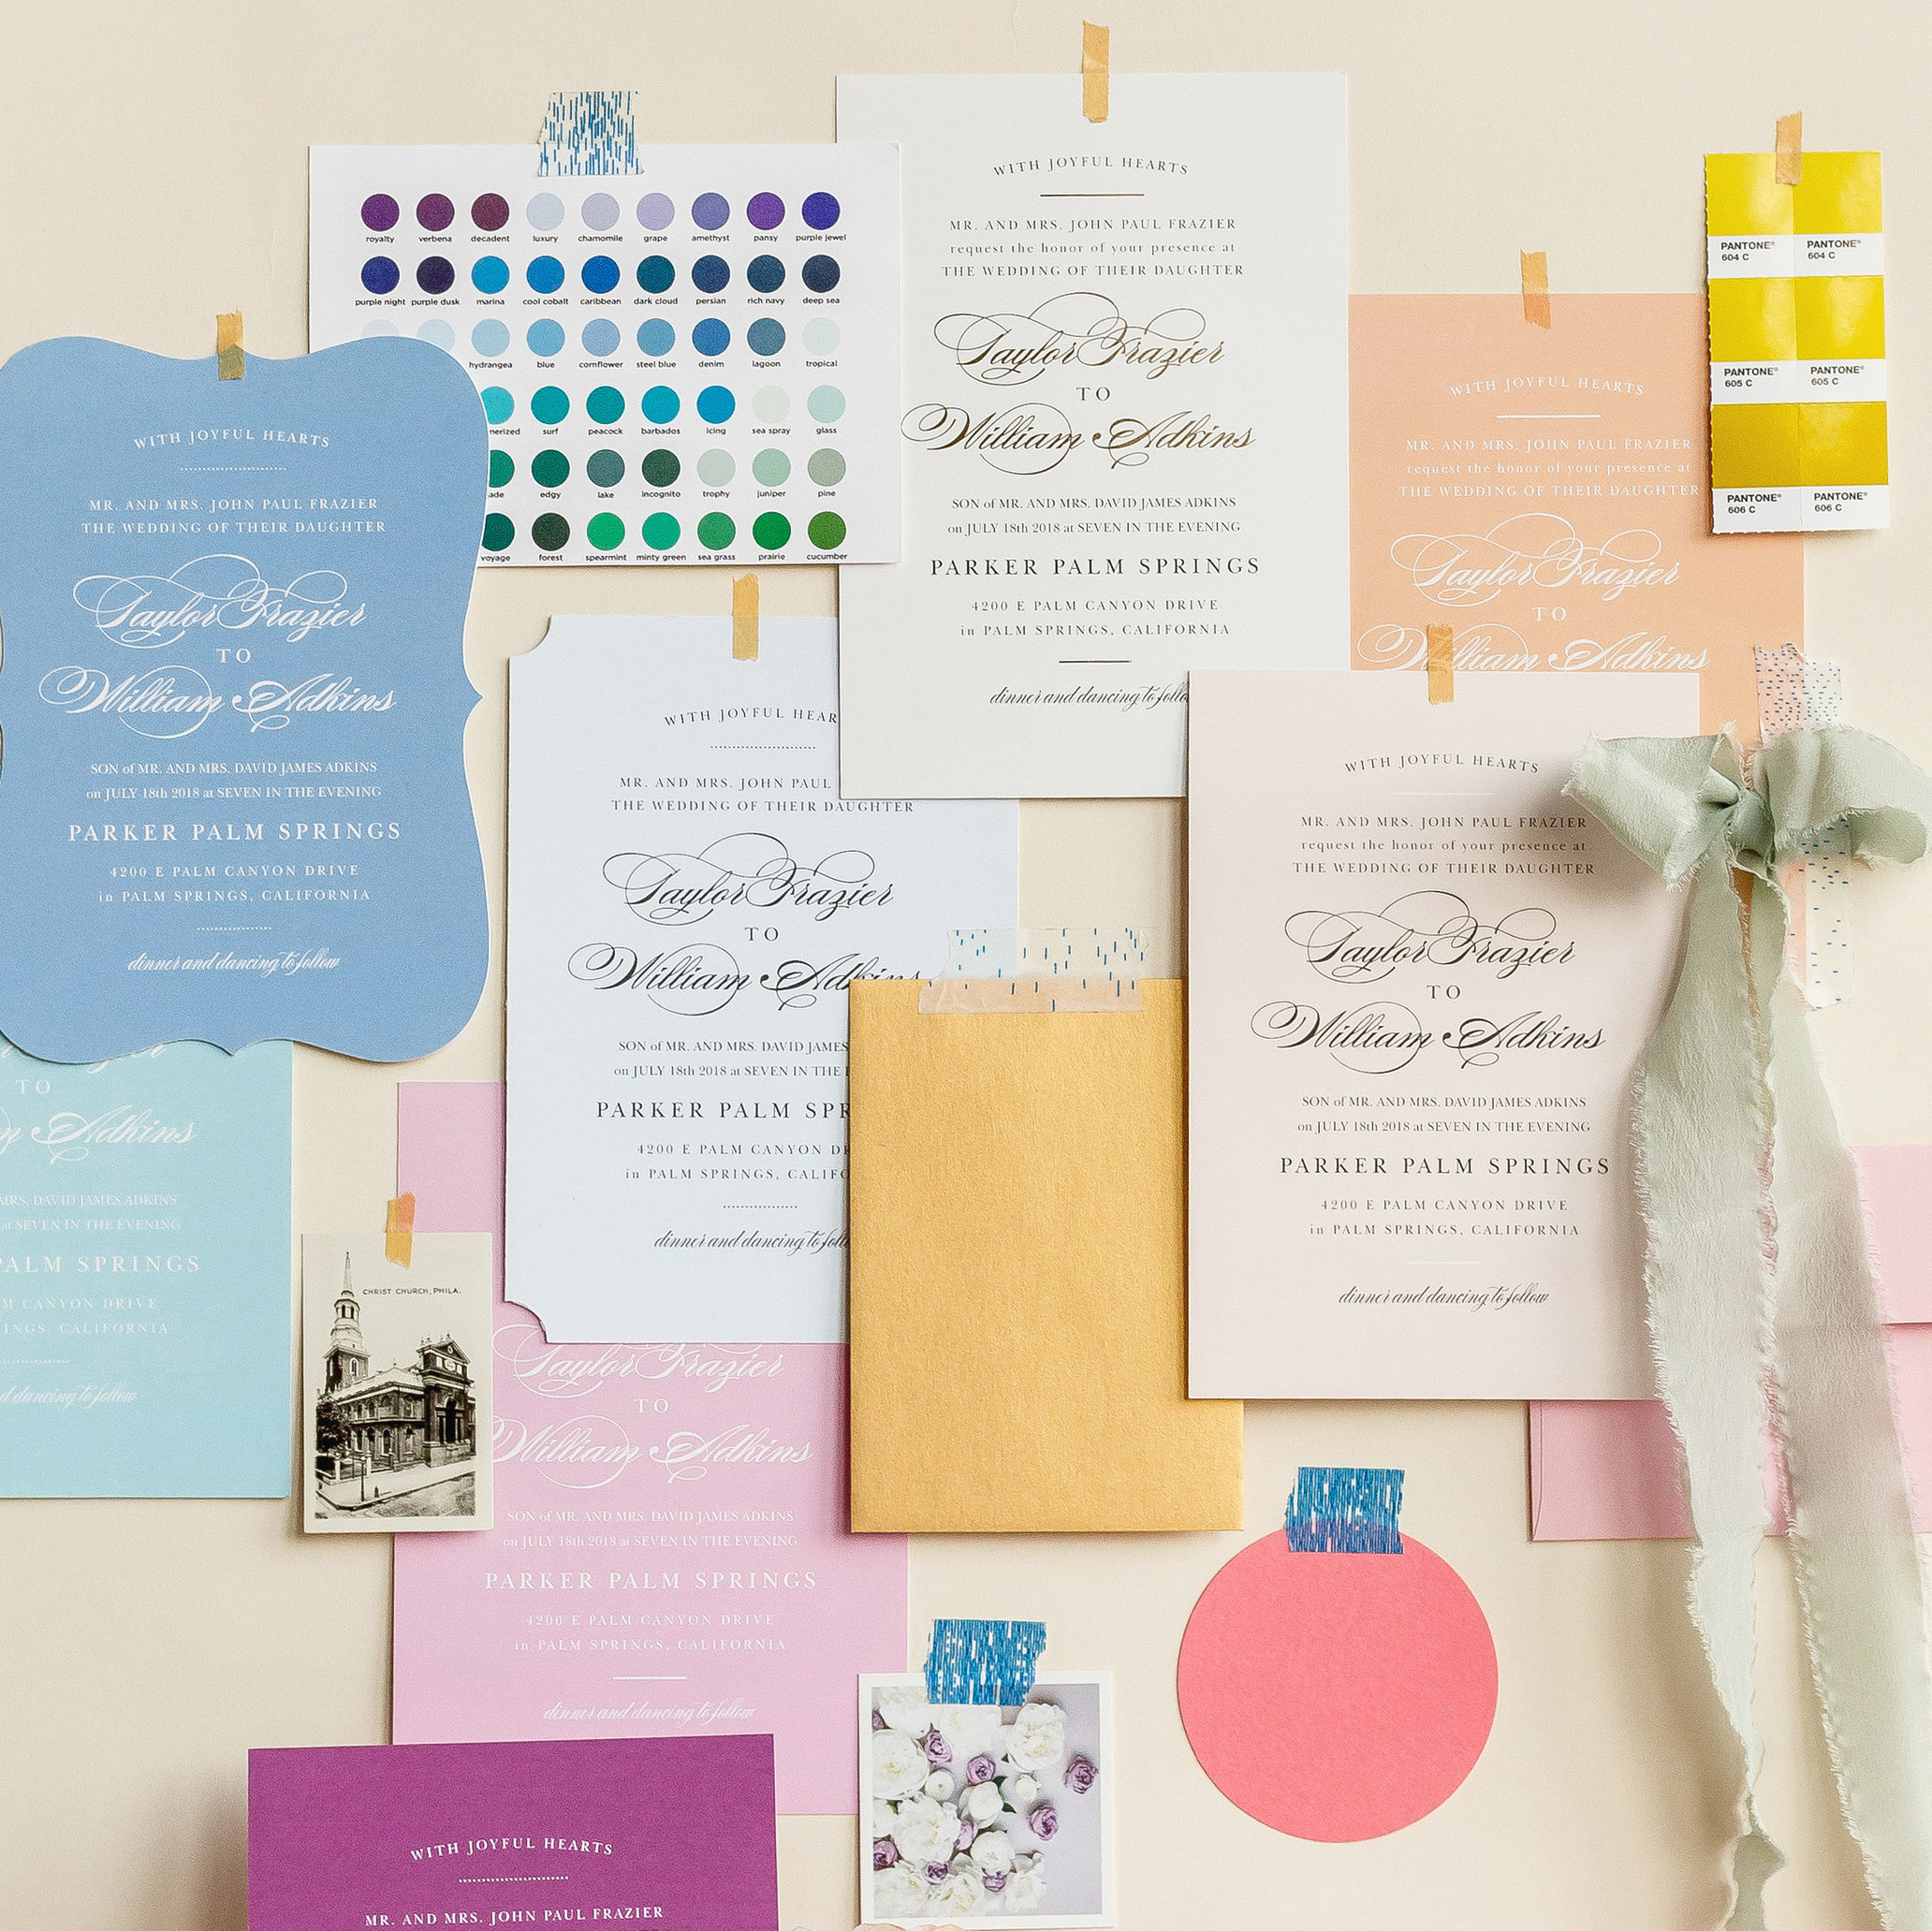 Let's Talk About Wedding Invitations